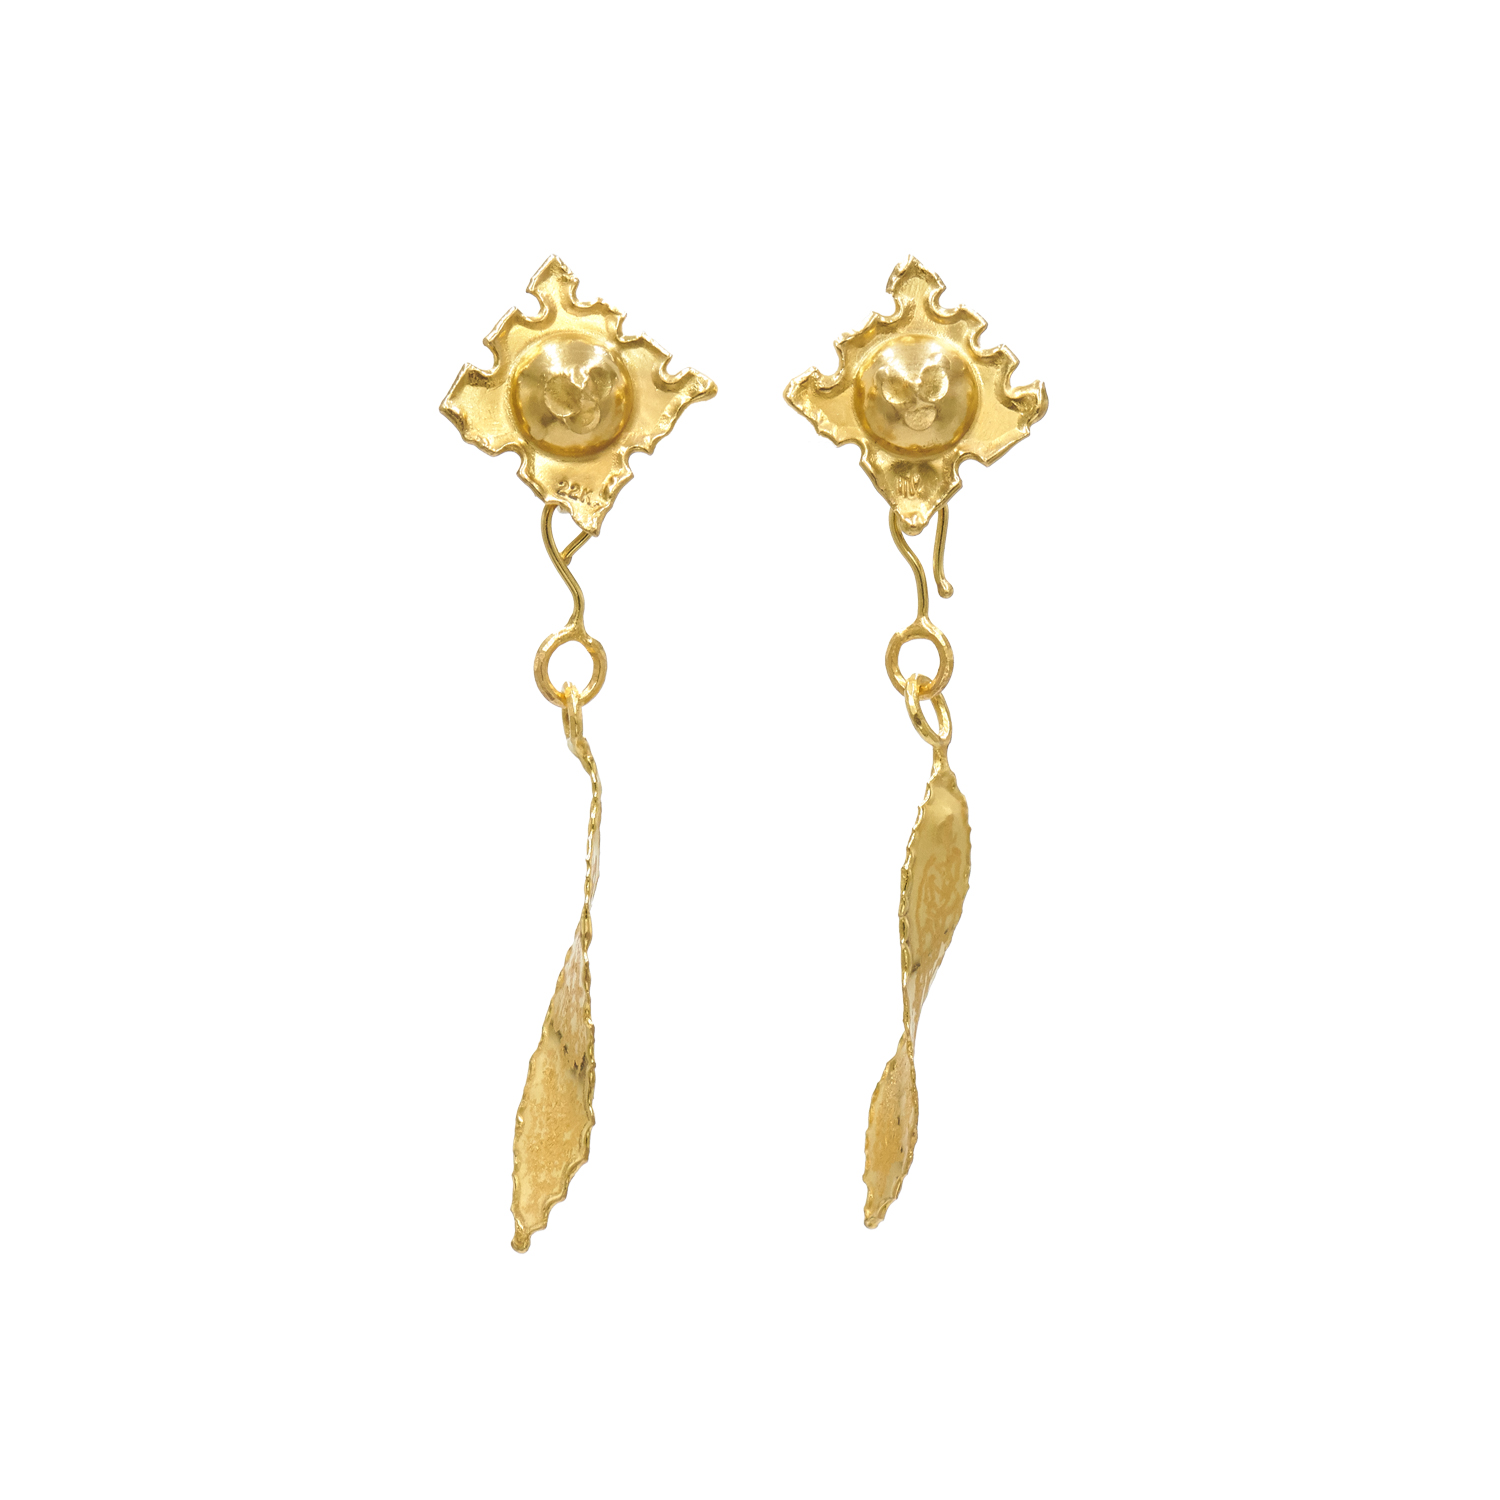 22K Yellow Gold Textured Leaf Motif Pendant Earrings by Jean Mahie, Serial FL41825